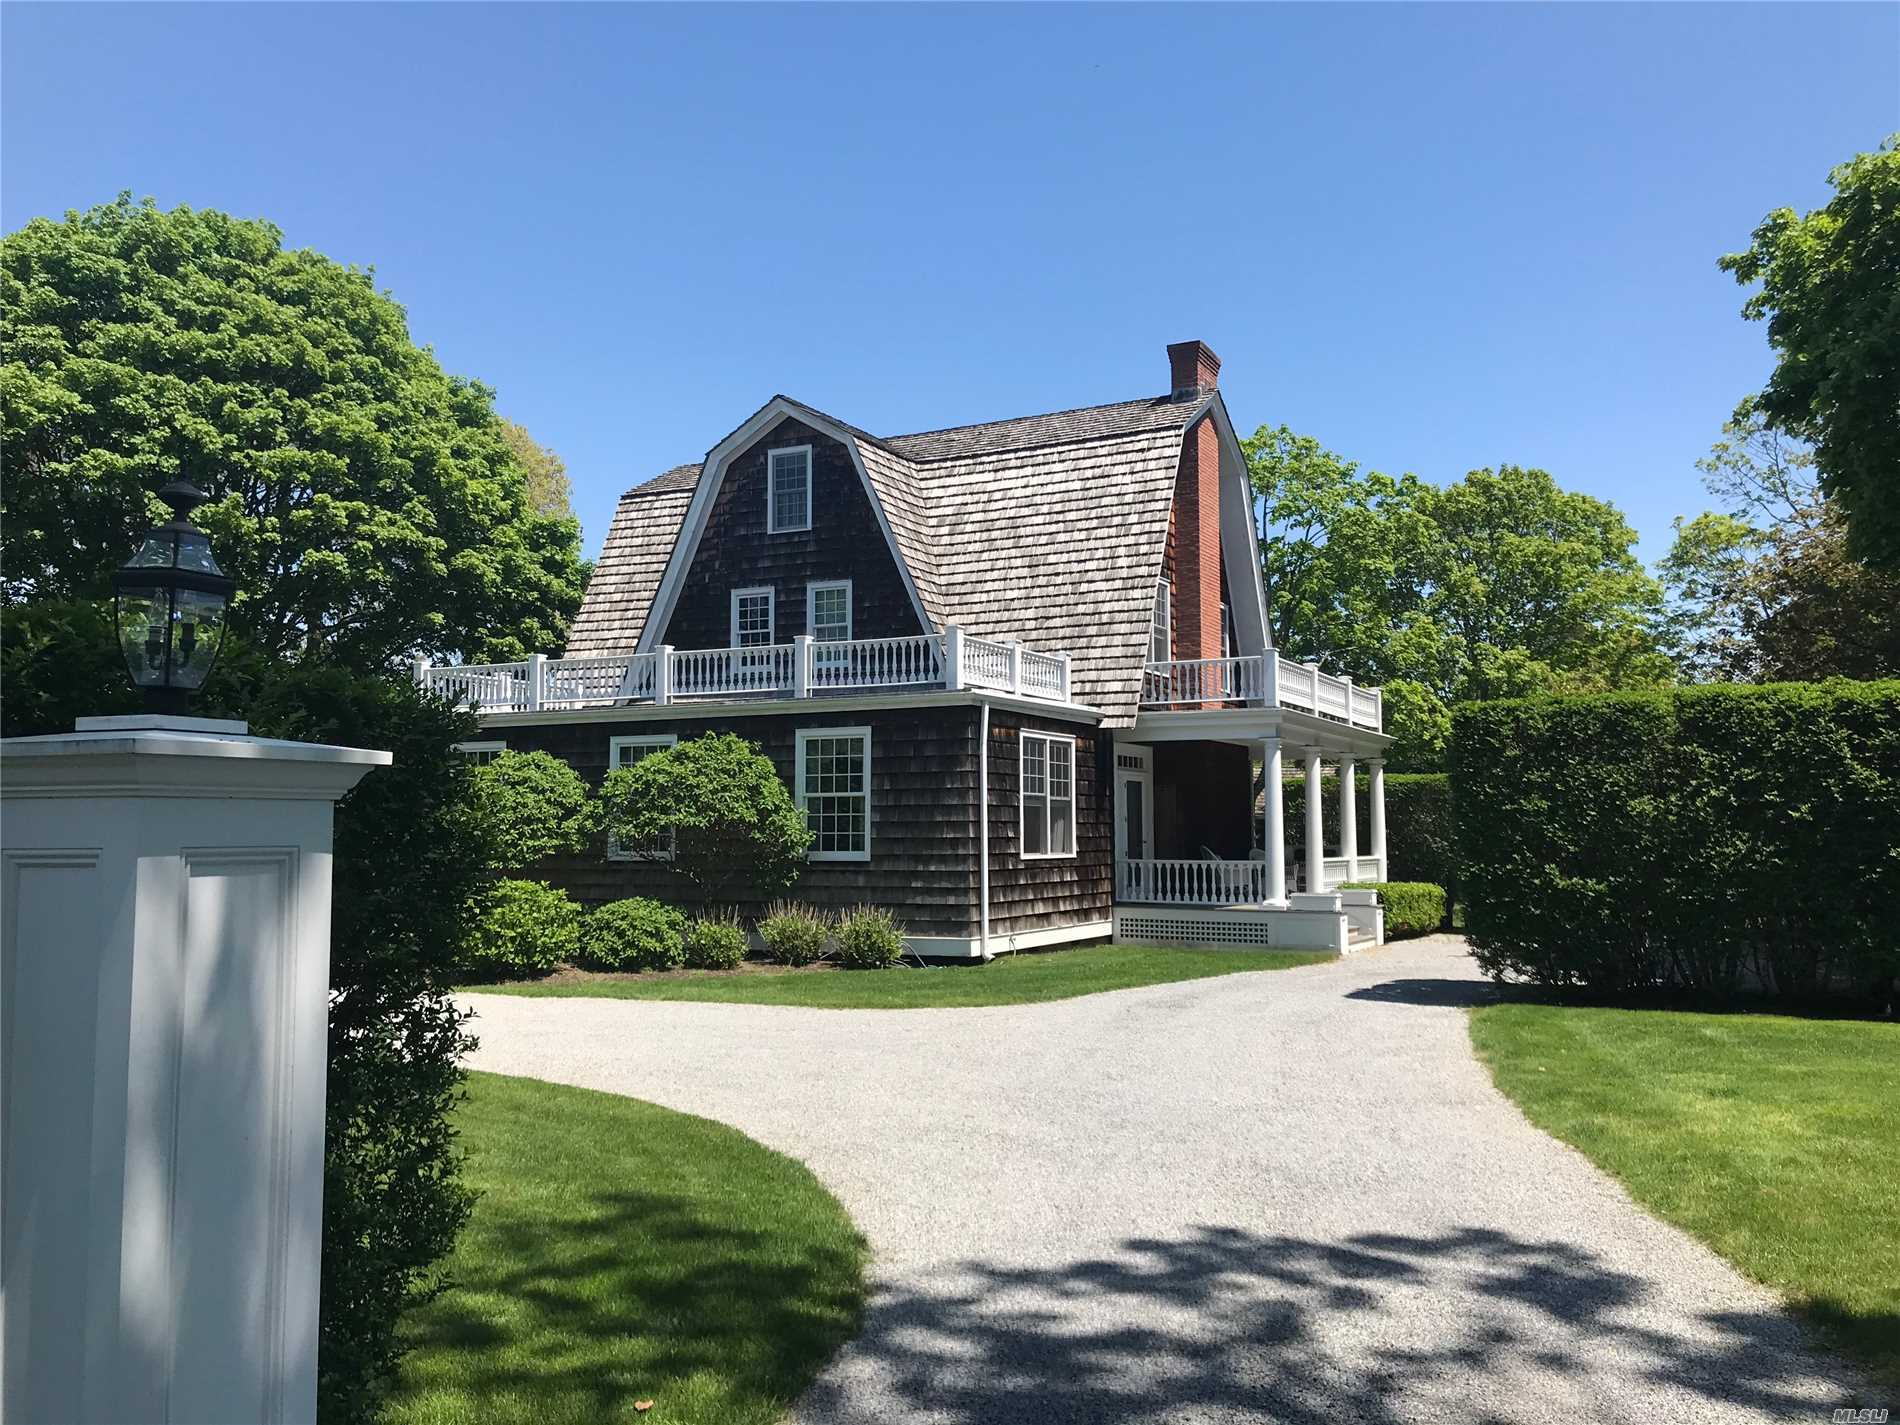 Estate Section Of Quogue.Beautiful And Comfortable Home With Great Entertaining Space Includes Living Room, Dining Room And Library All Lead To The Best Chef's Kitchen W/Huge Center Isle, 6 Burner Gas Stove, Wine Fridge, 2 Dishwashers, Cocktail Center. A Very Private Master Suite With It's Own Office Along With 3 Other Guest Rooms Assure Comfy Sleeping. Gunite Heated Pool, Pool House With Wet Bar And 1/2 Bath, Spacious Patio Is So Inviting For Those Summer Days.Quogue Beach And Only 90 Mins N Y C.